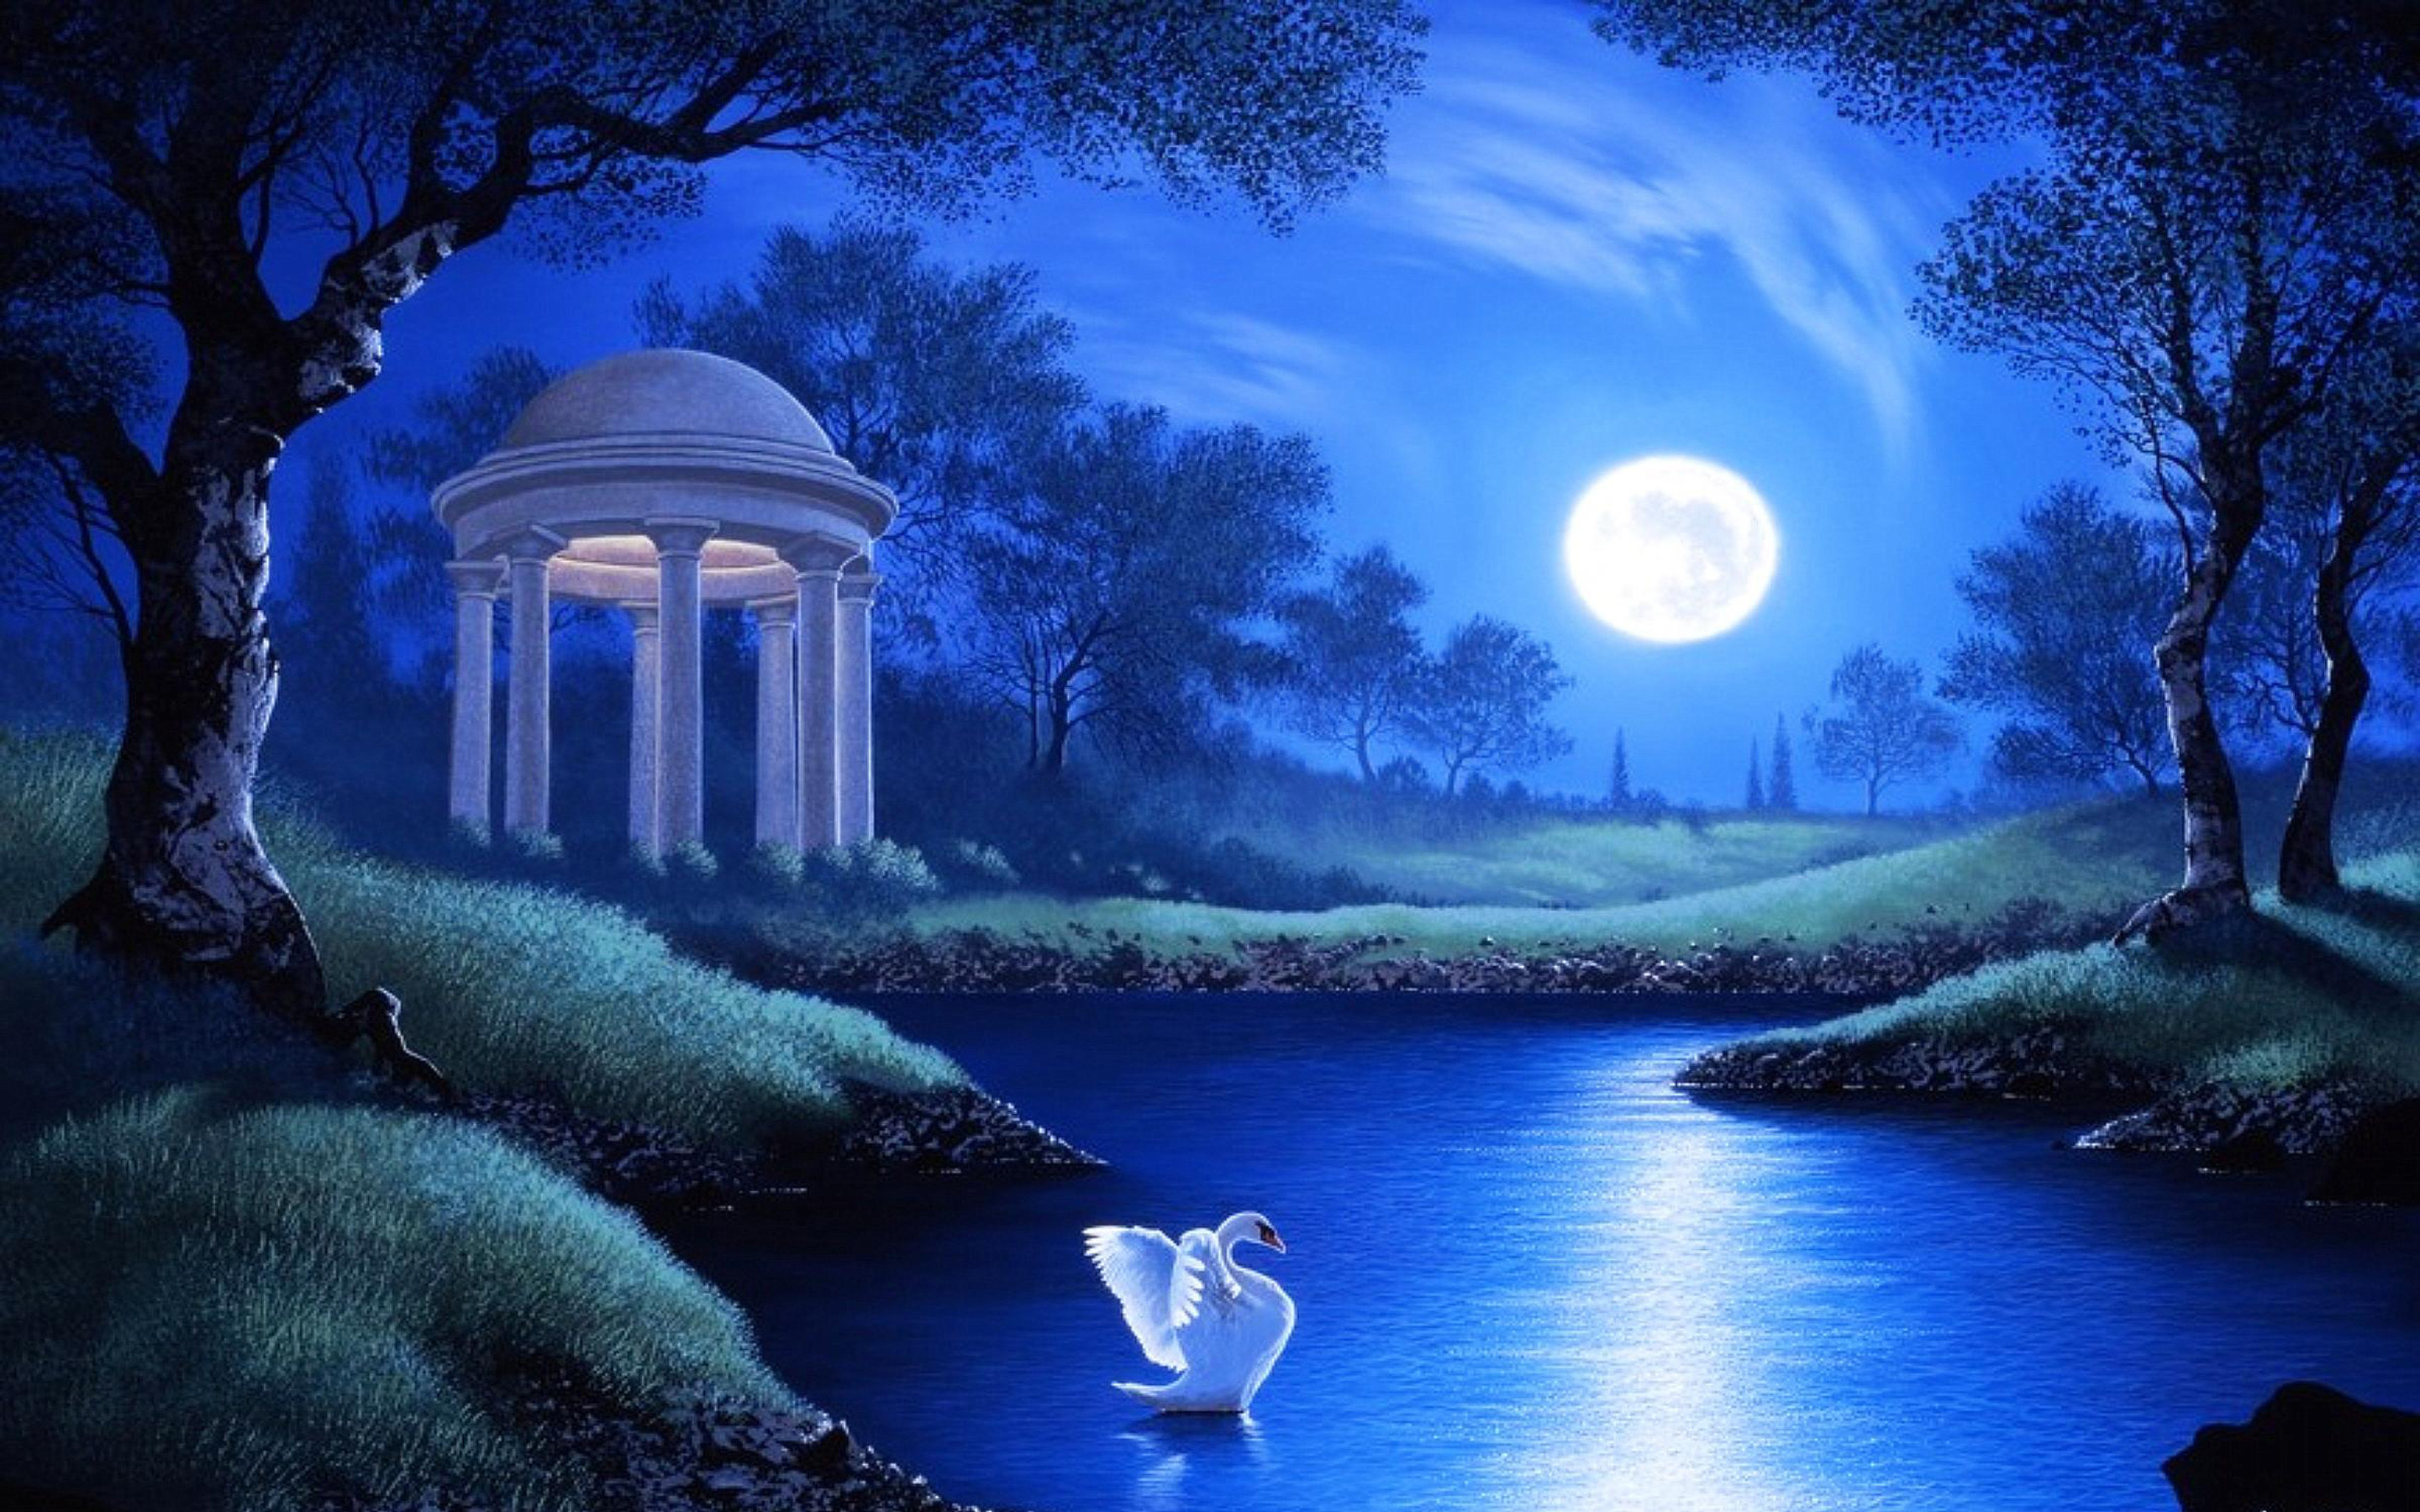 3d Animated Wallpaper For Laptop Free Download Swan Lake Night Full Moon Trees Grass Hd Wallpaper